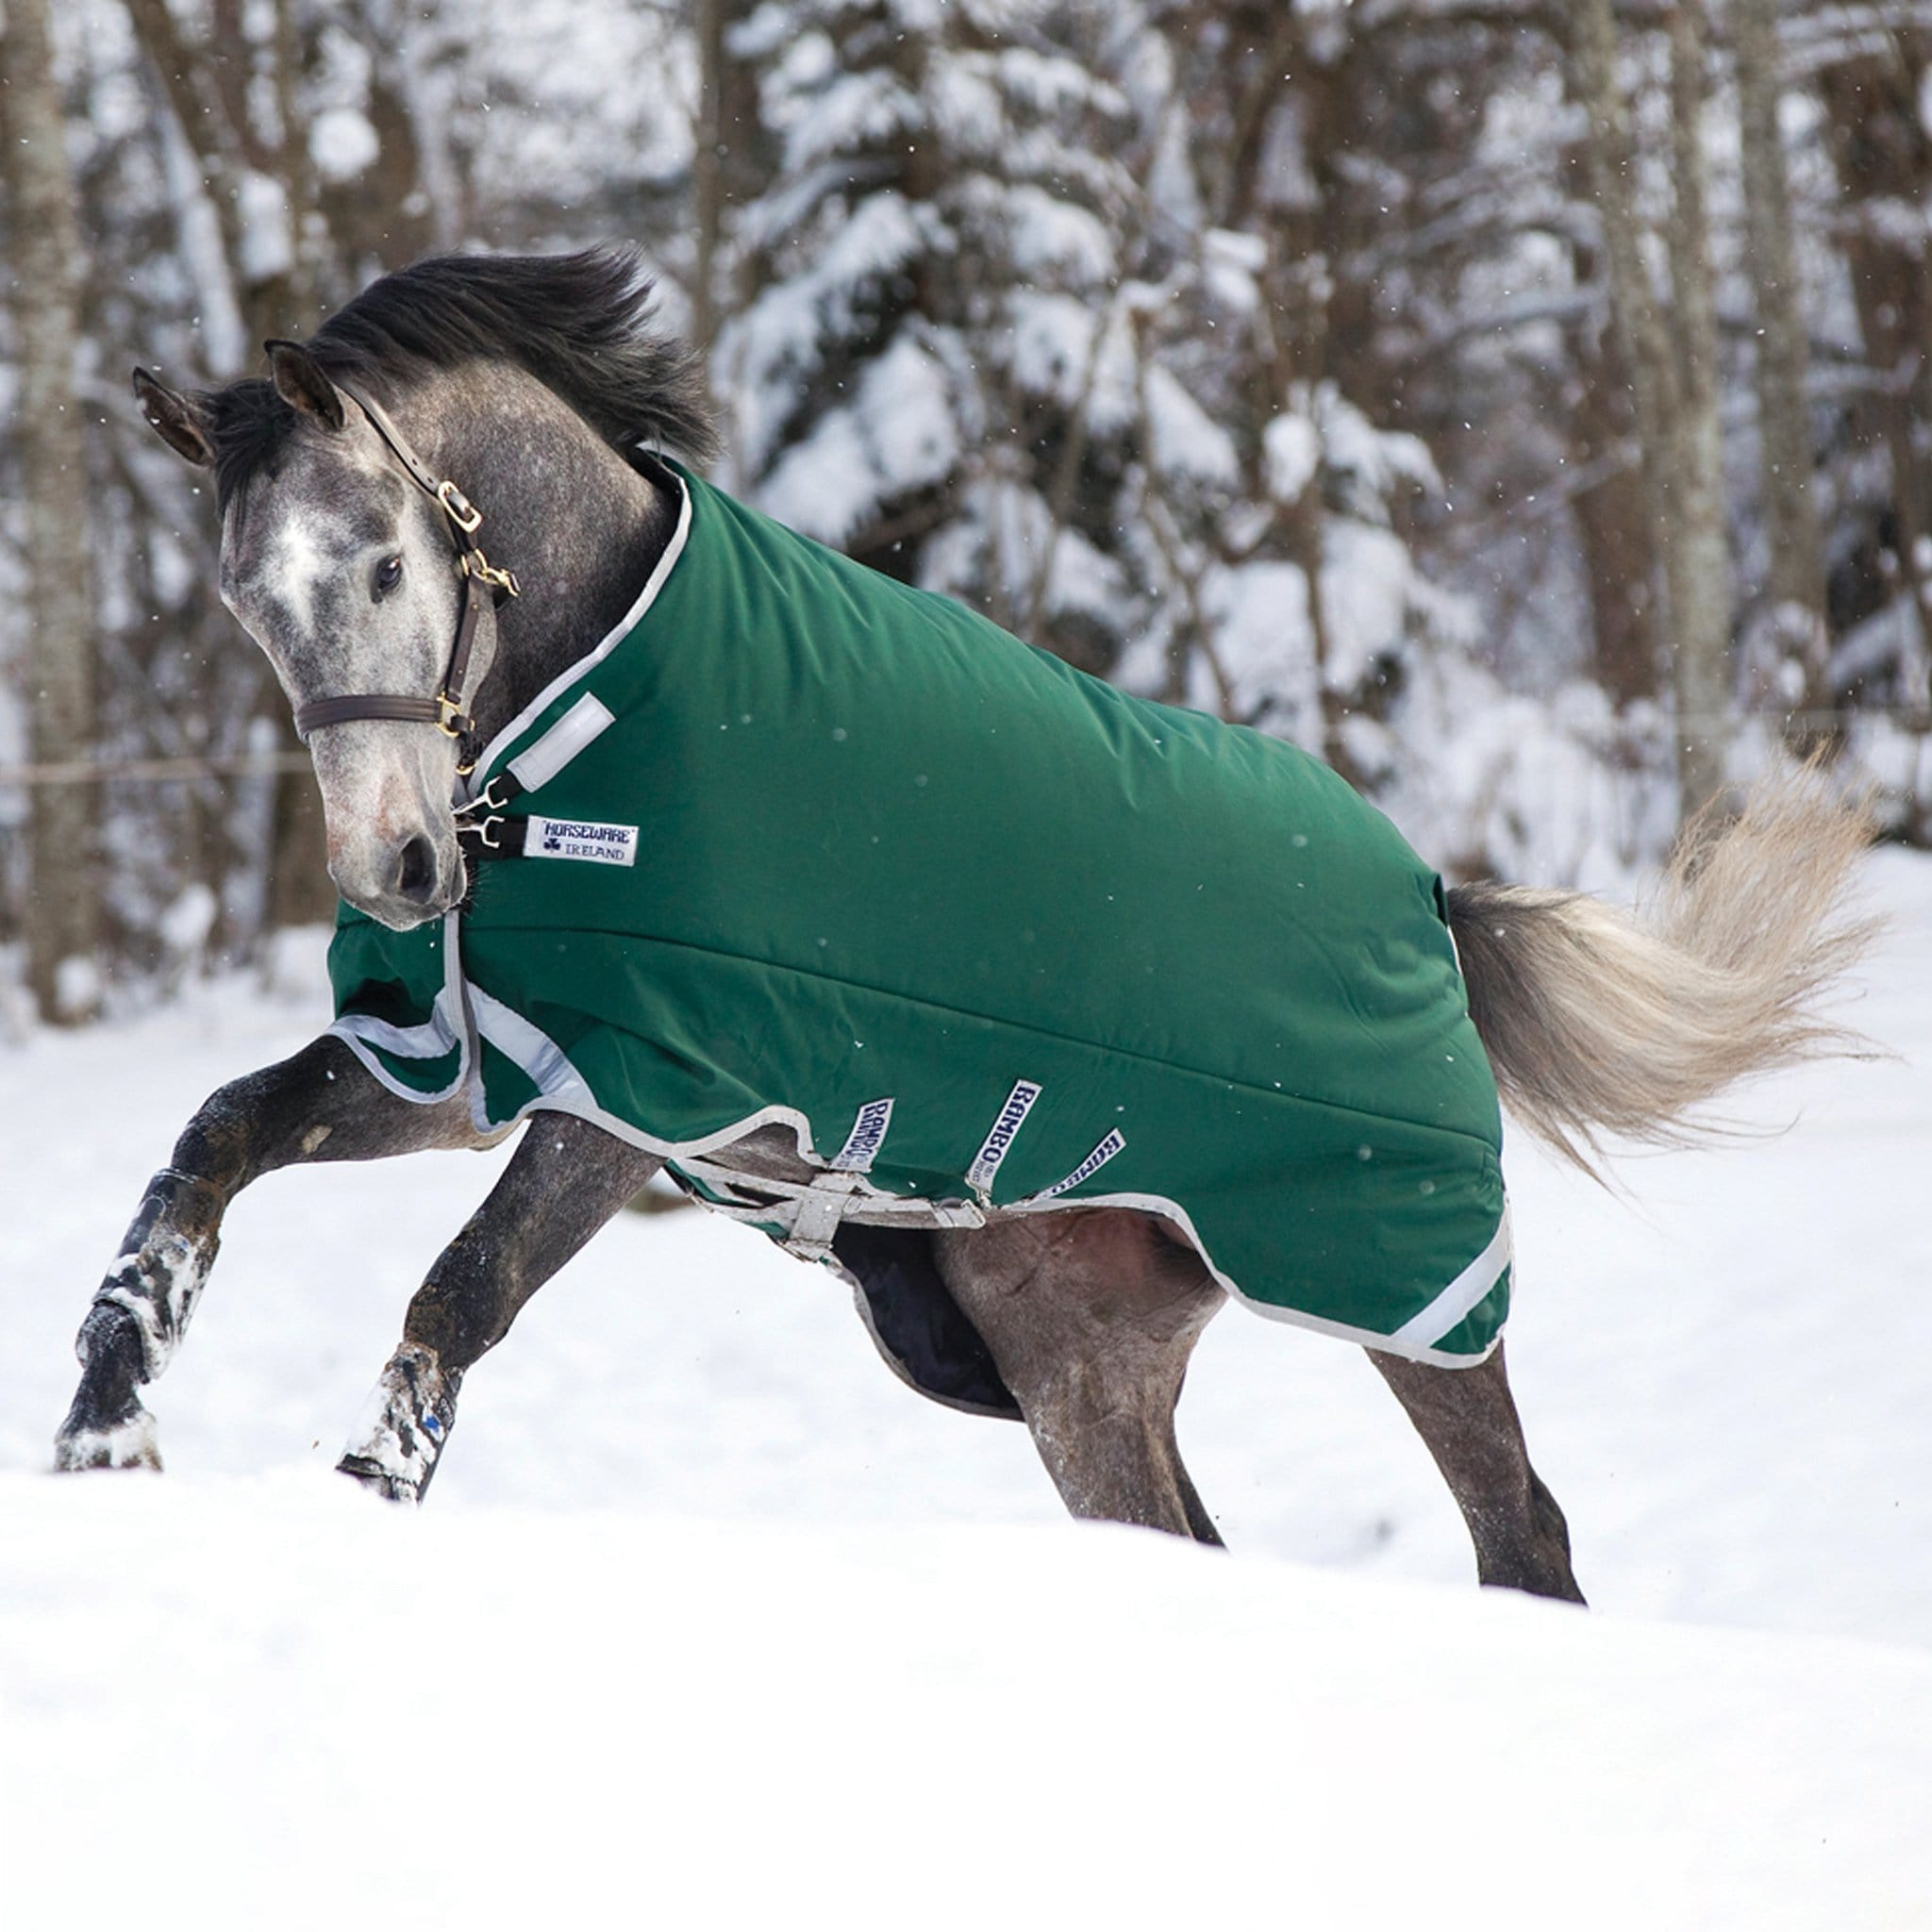 Rambo Original with Leg Arches 400g Heavyweight Standard Neck Turnout Rug AAAA98 Green With Silver Trim On Grey Horse.